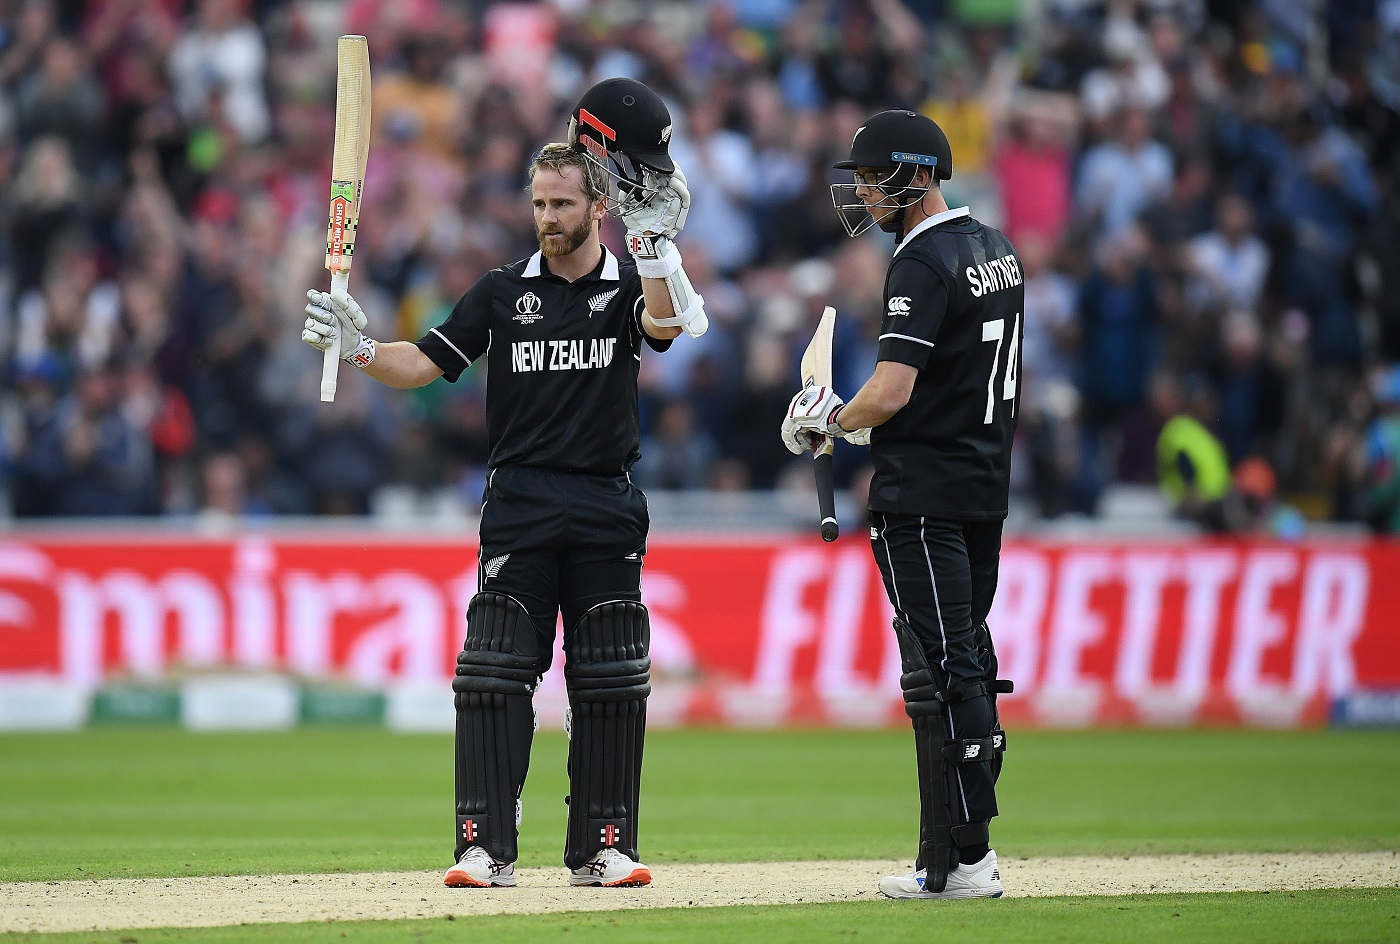 New Zealand defeat South Africa by 4 wickets in 25th match of the 2019 World Cup